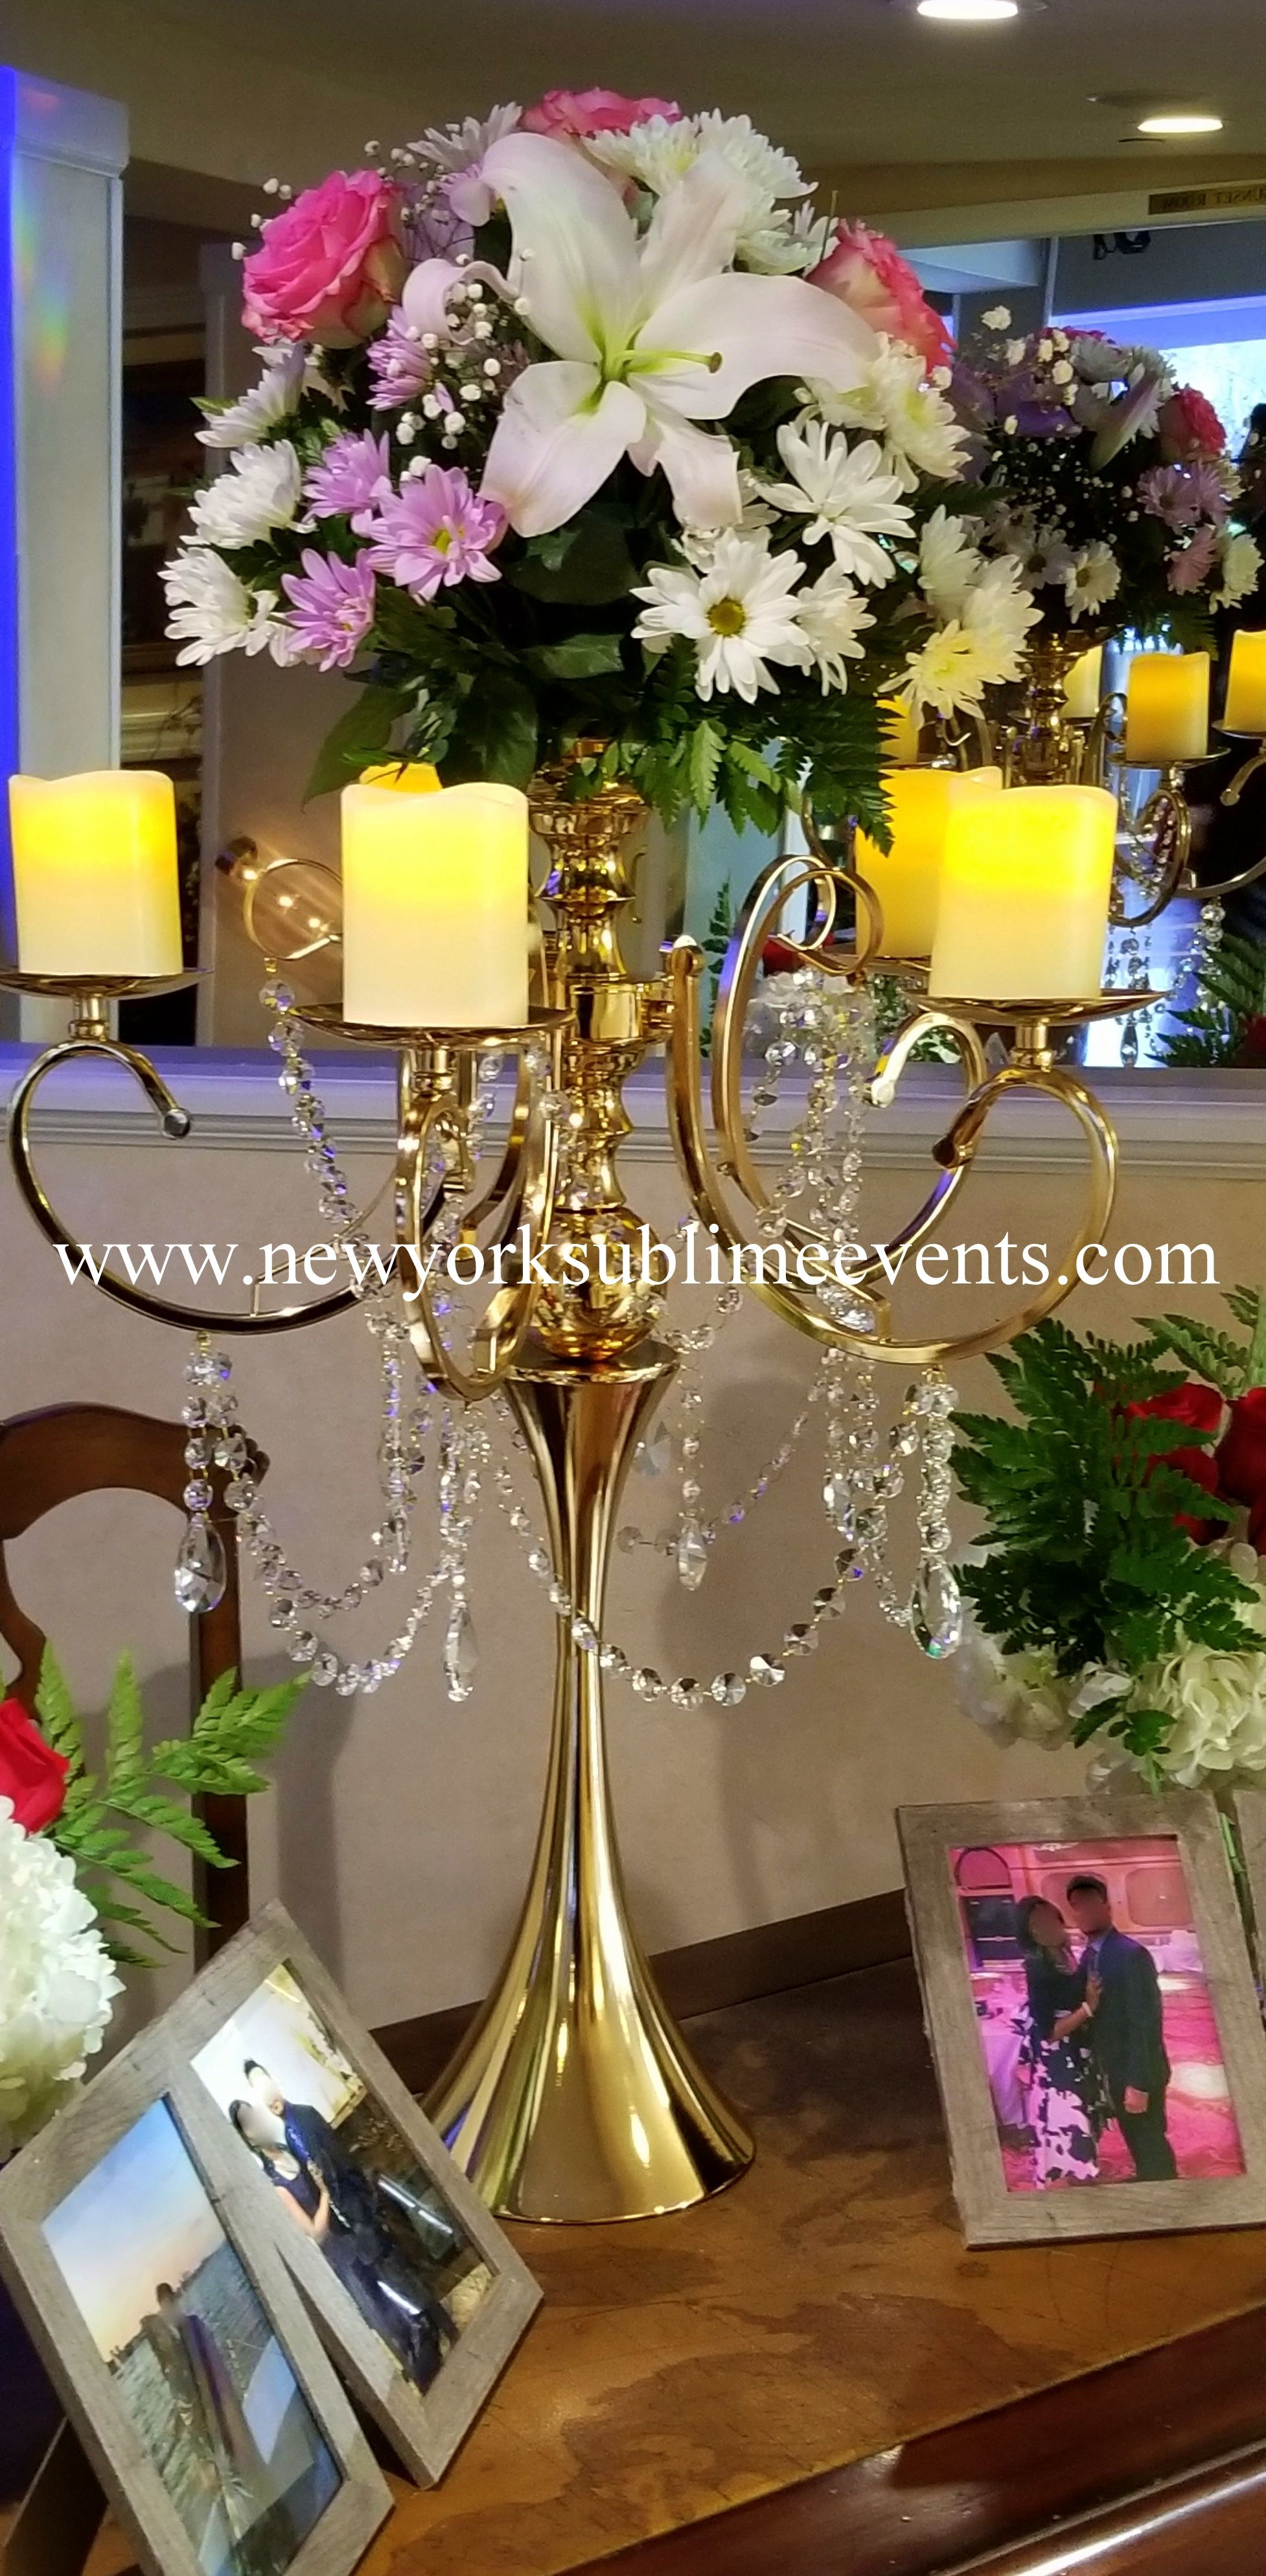 Beautiful majestic wedding set up featuring our gold